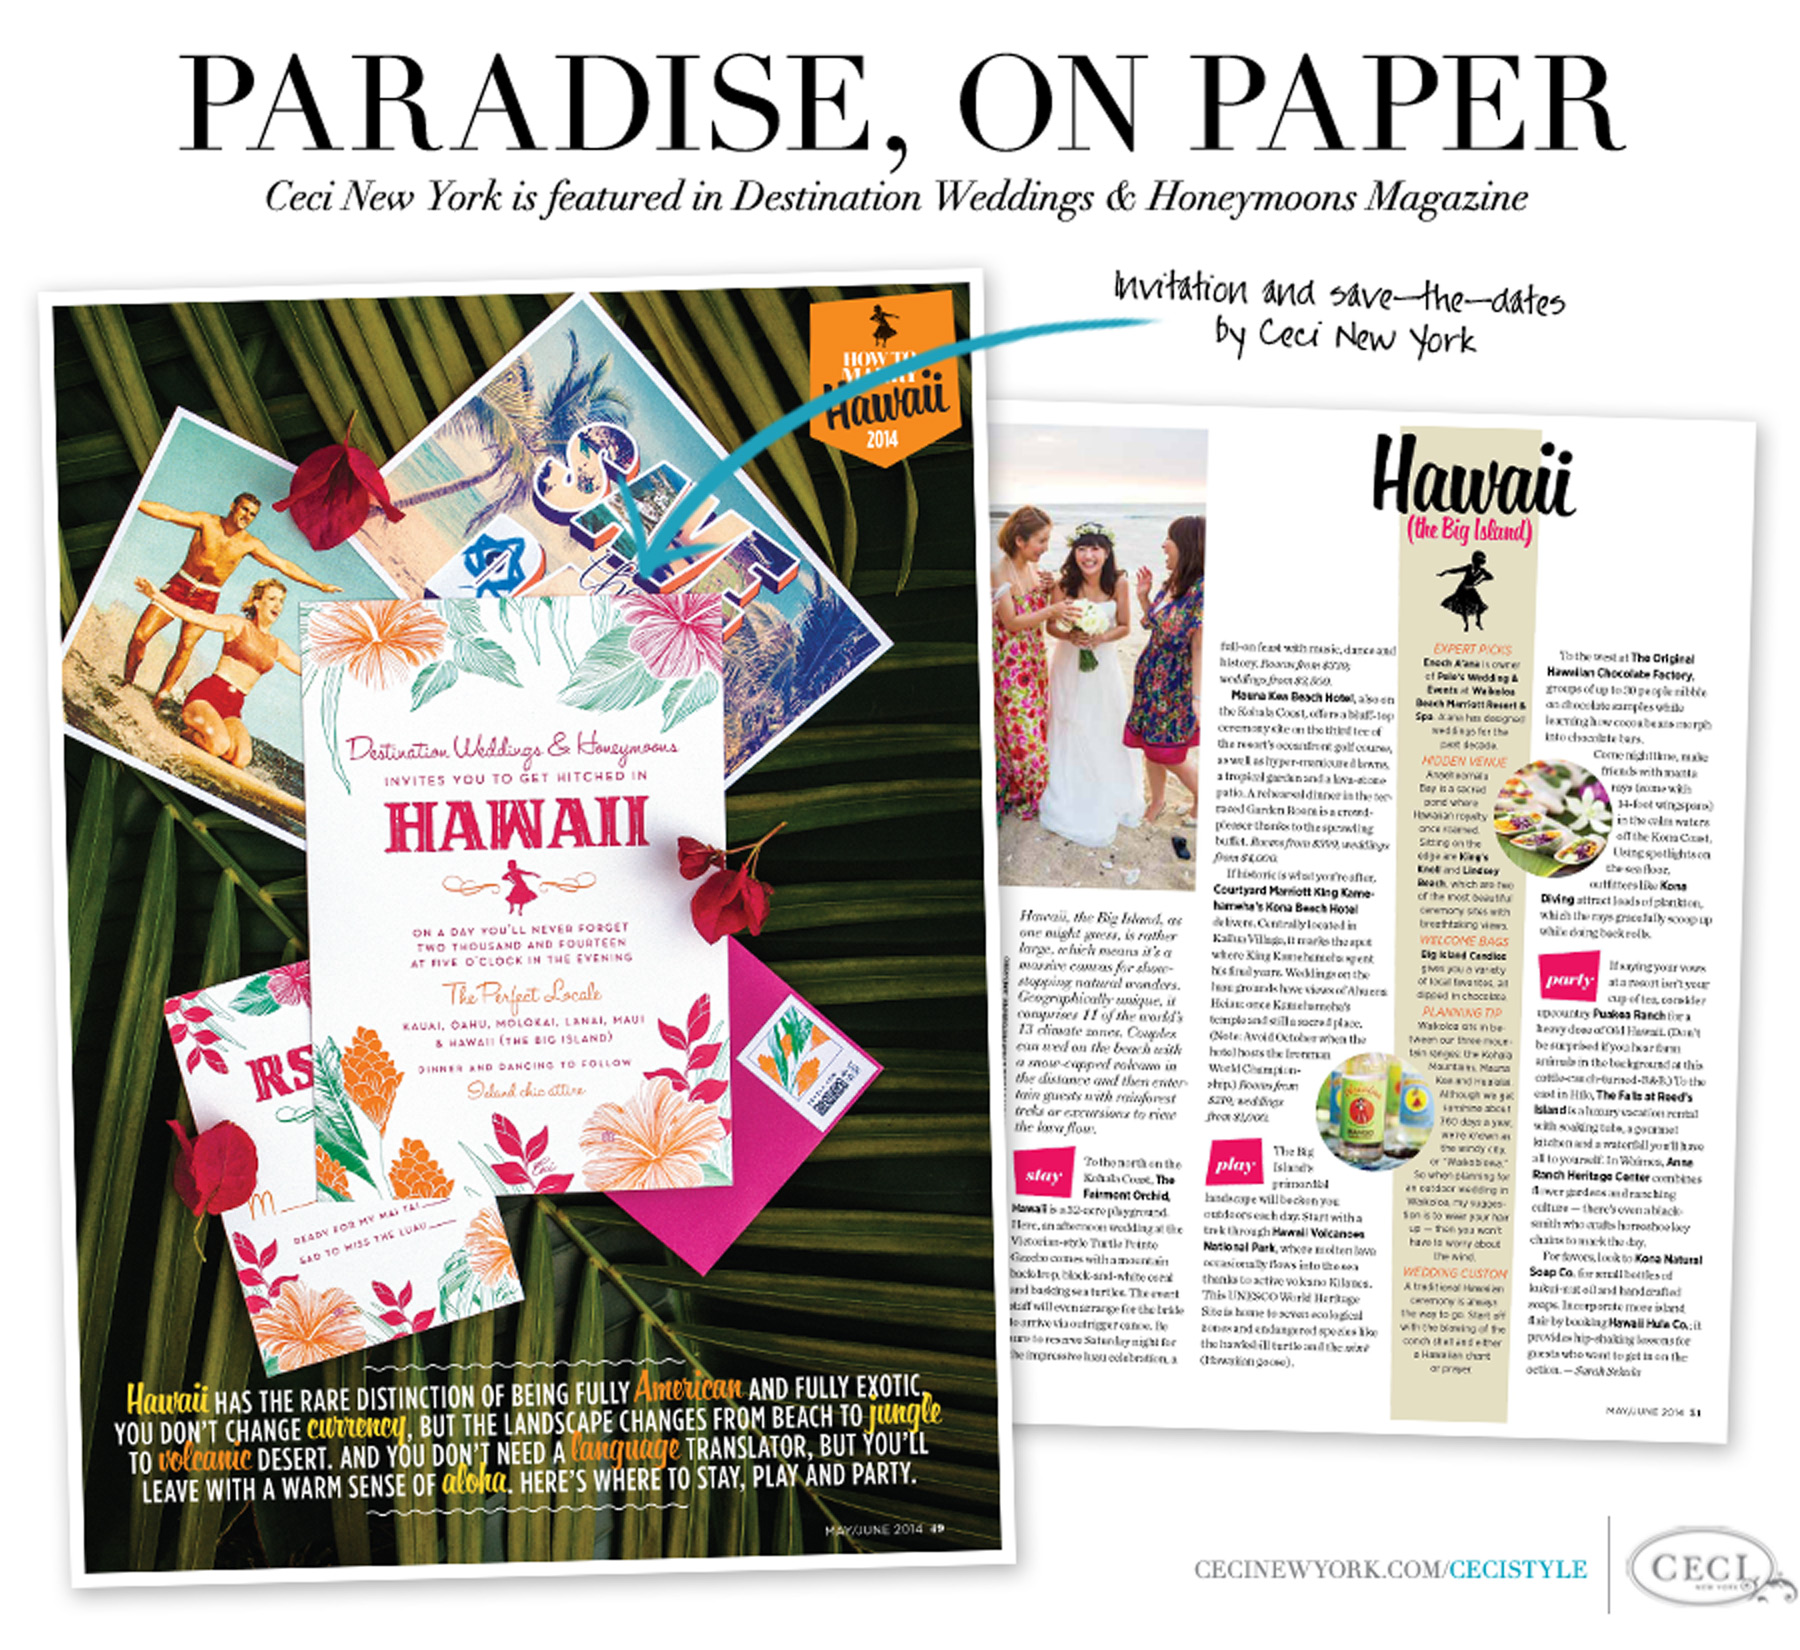 Paradise, On Paper - Ceci New York is featured in Destination Weddings & Honeymoons Magazine